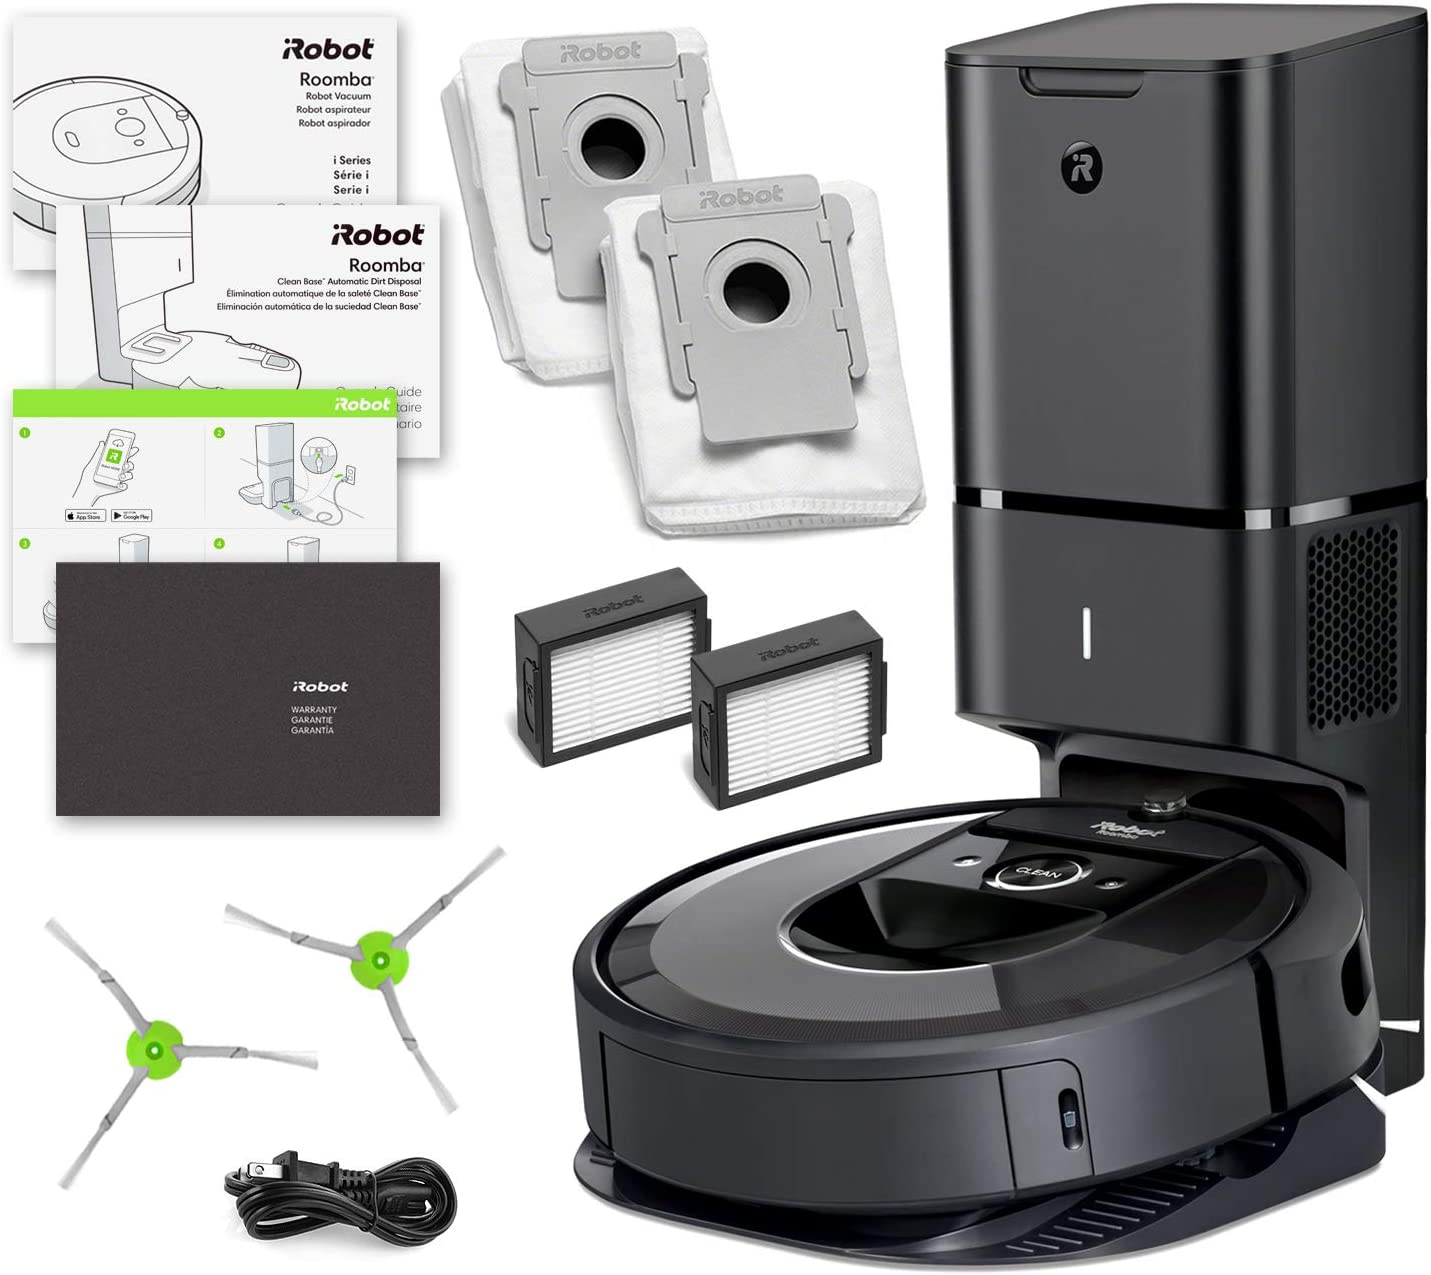 Roomba i7 i7 Plus iRobot Robot Vacuum 7550 Automatic Dirt Disposal, Ideal for Pet Hair, Wi-Fi Connected, Smart Mapping 1 Extra Edge-Sweeping Brush, 1 Extra Filter Bundle